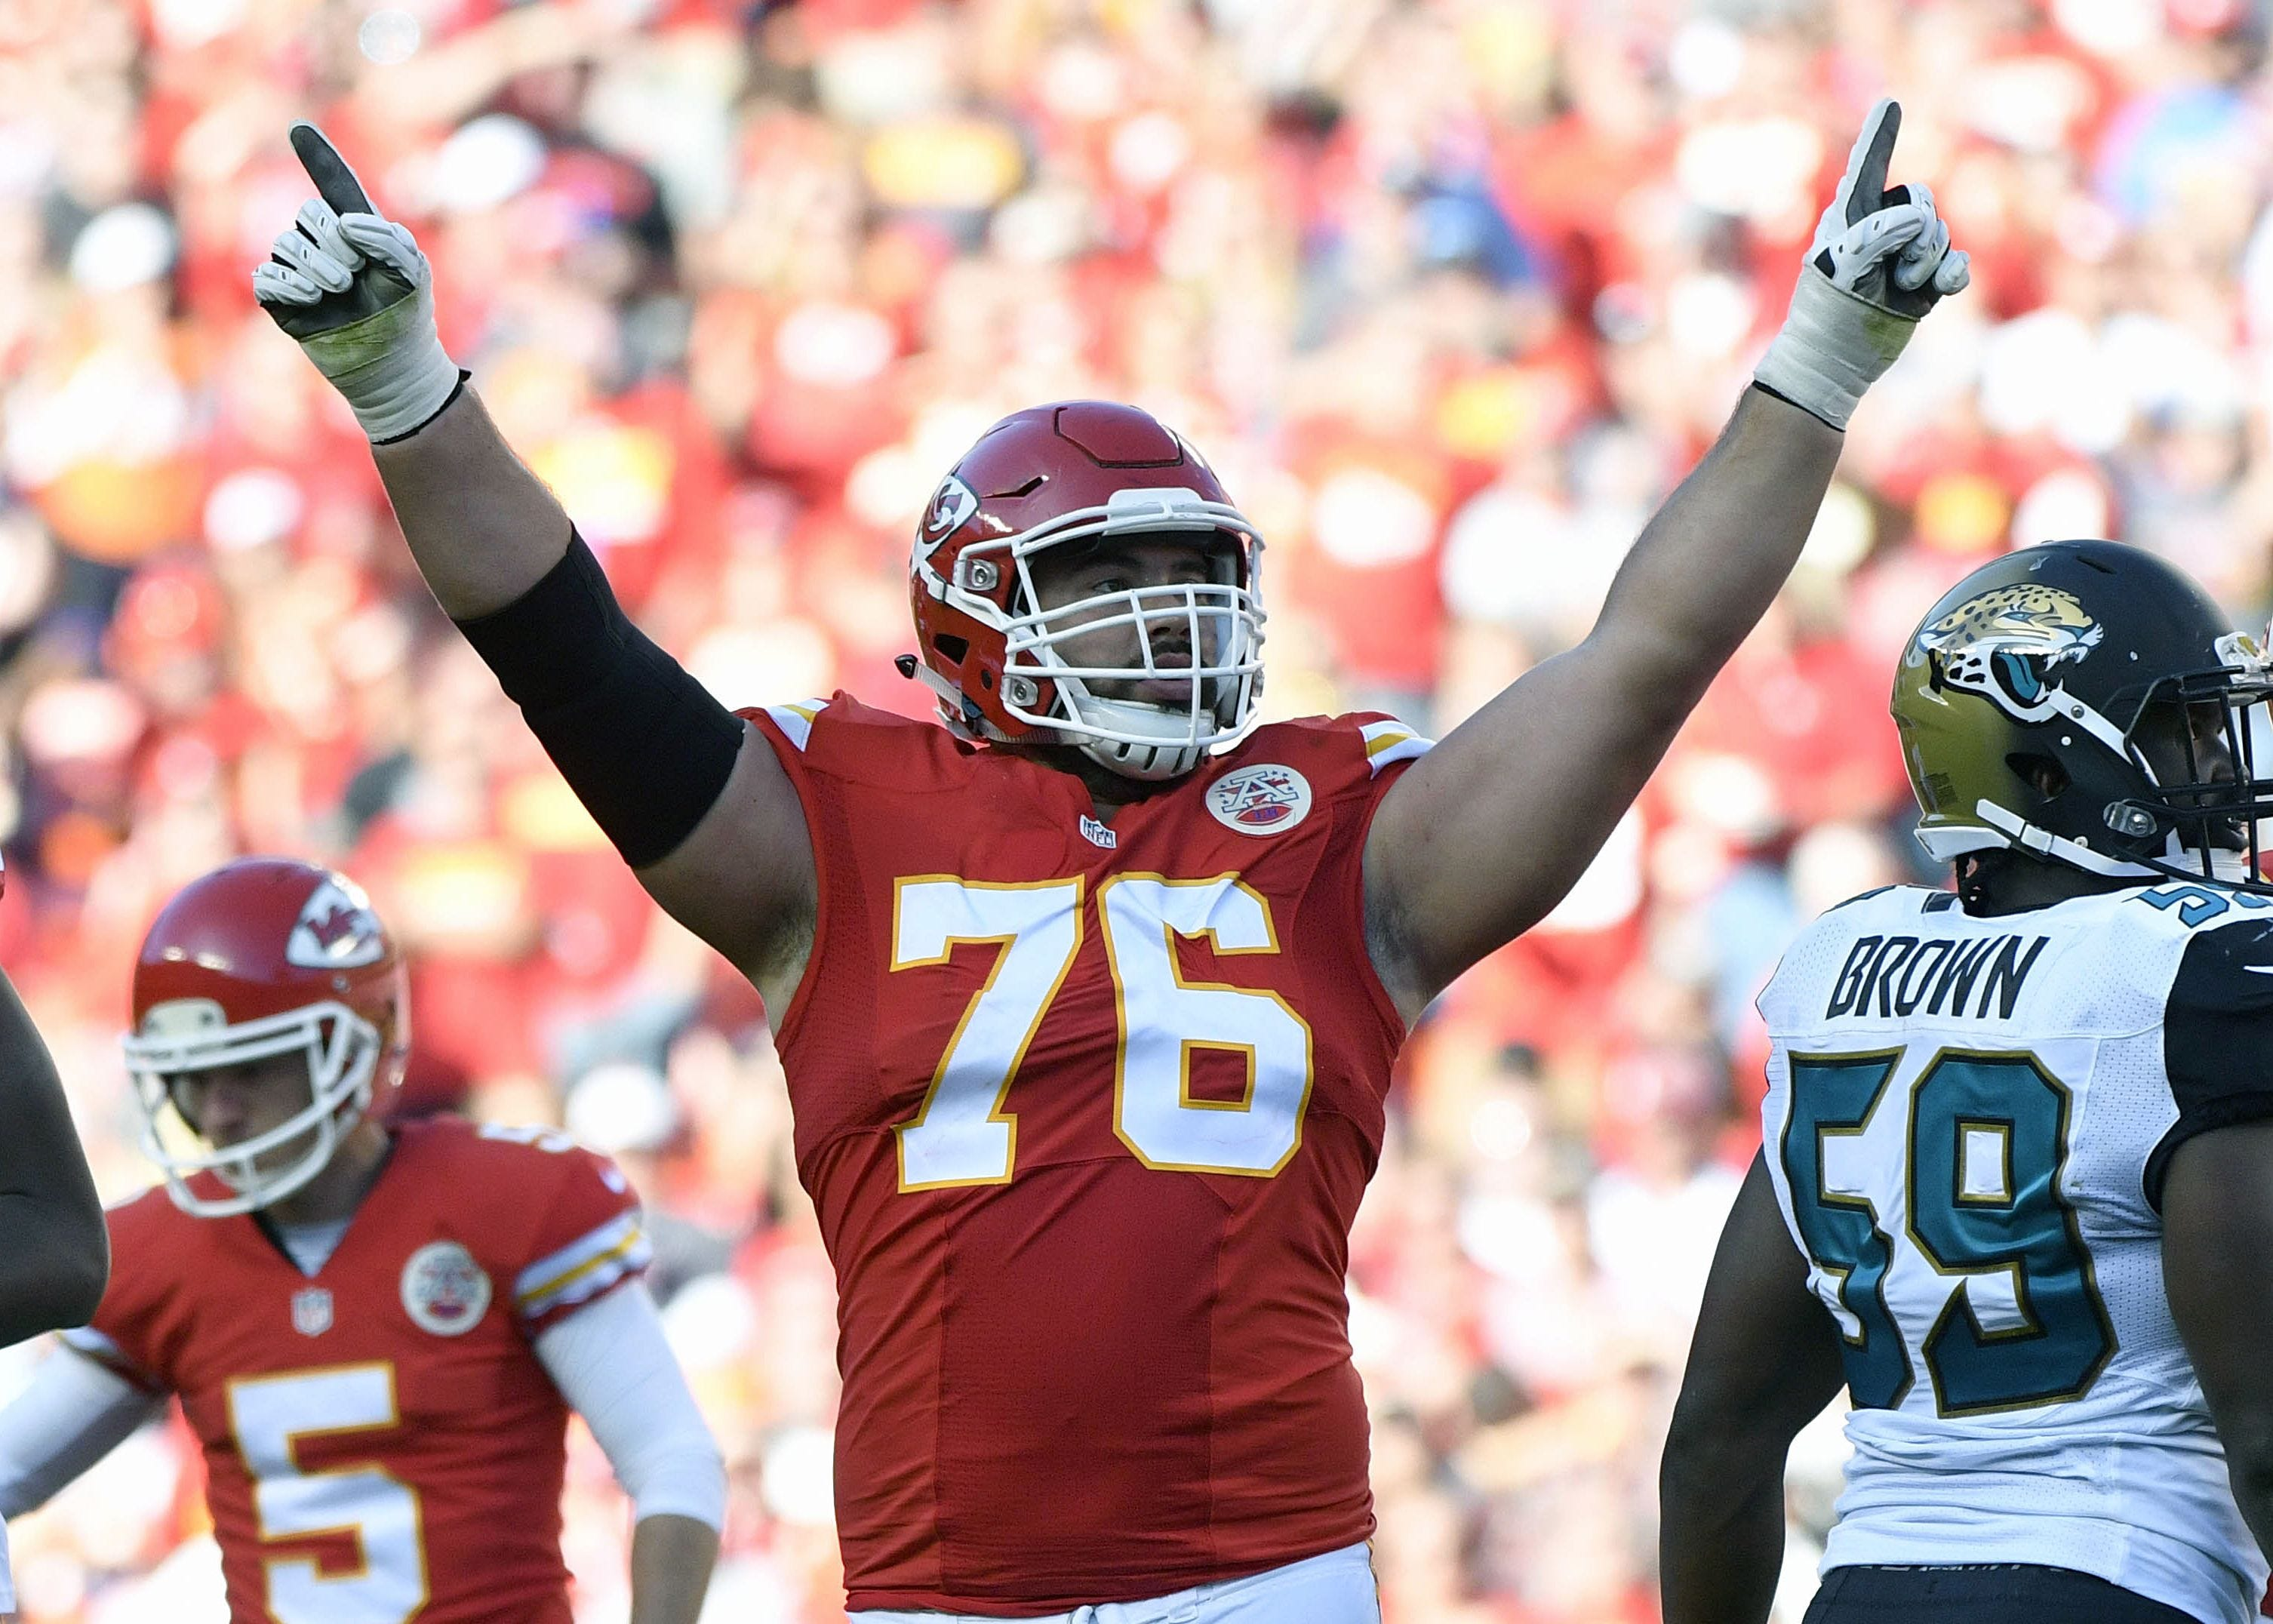 Call him Dr. Laurent Duvernay-Tardif: Chiefs offensive lineman earns medical degree